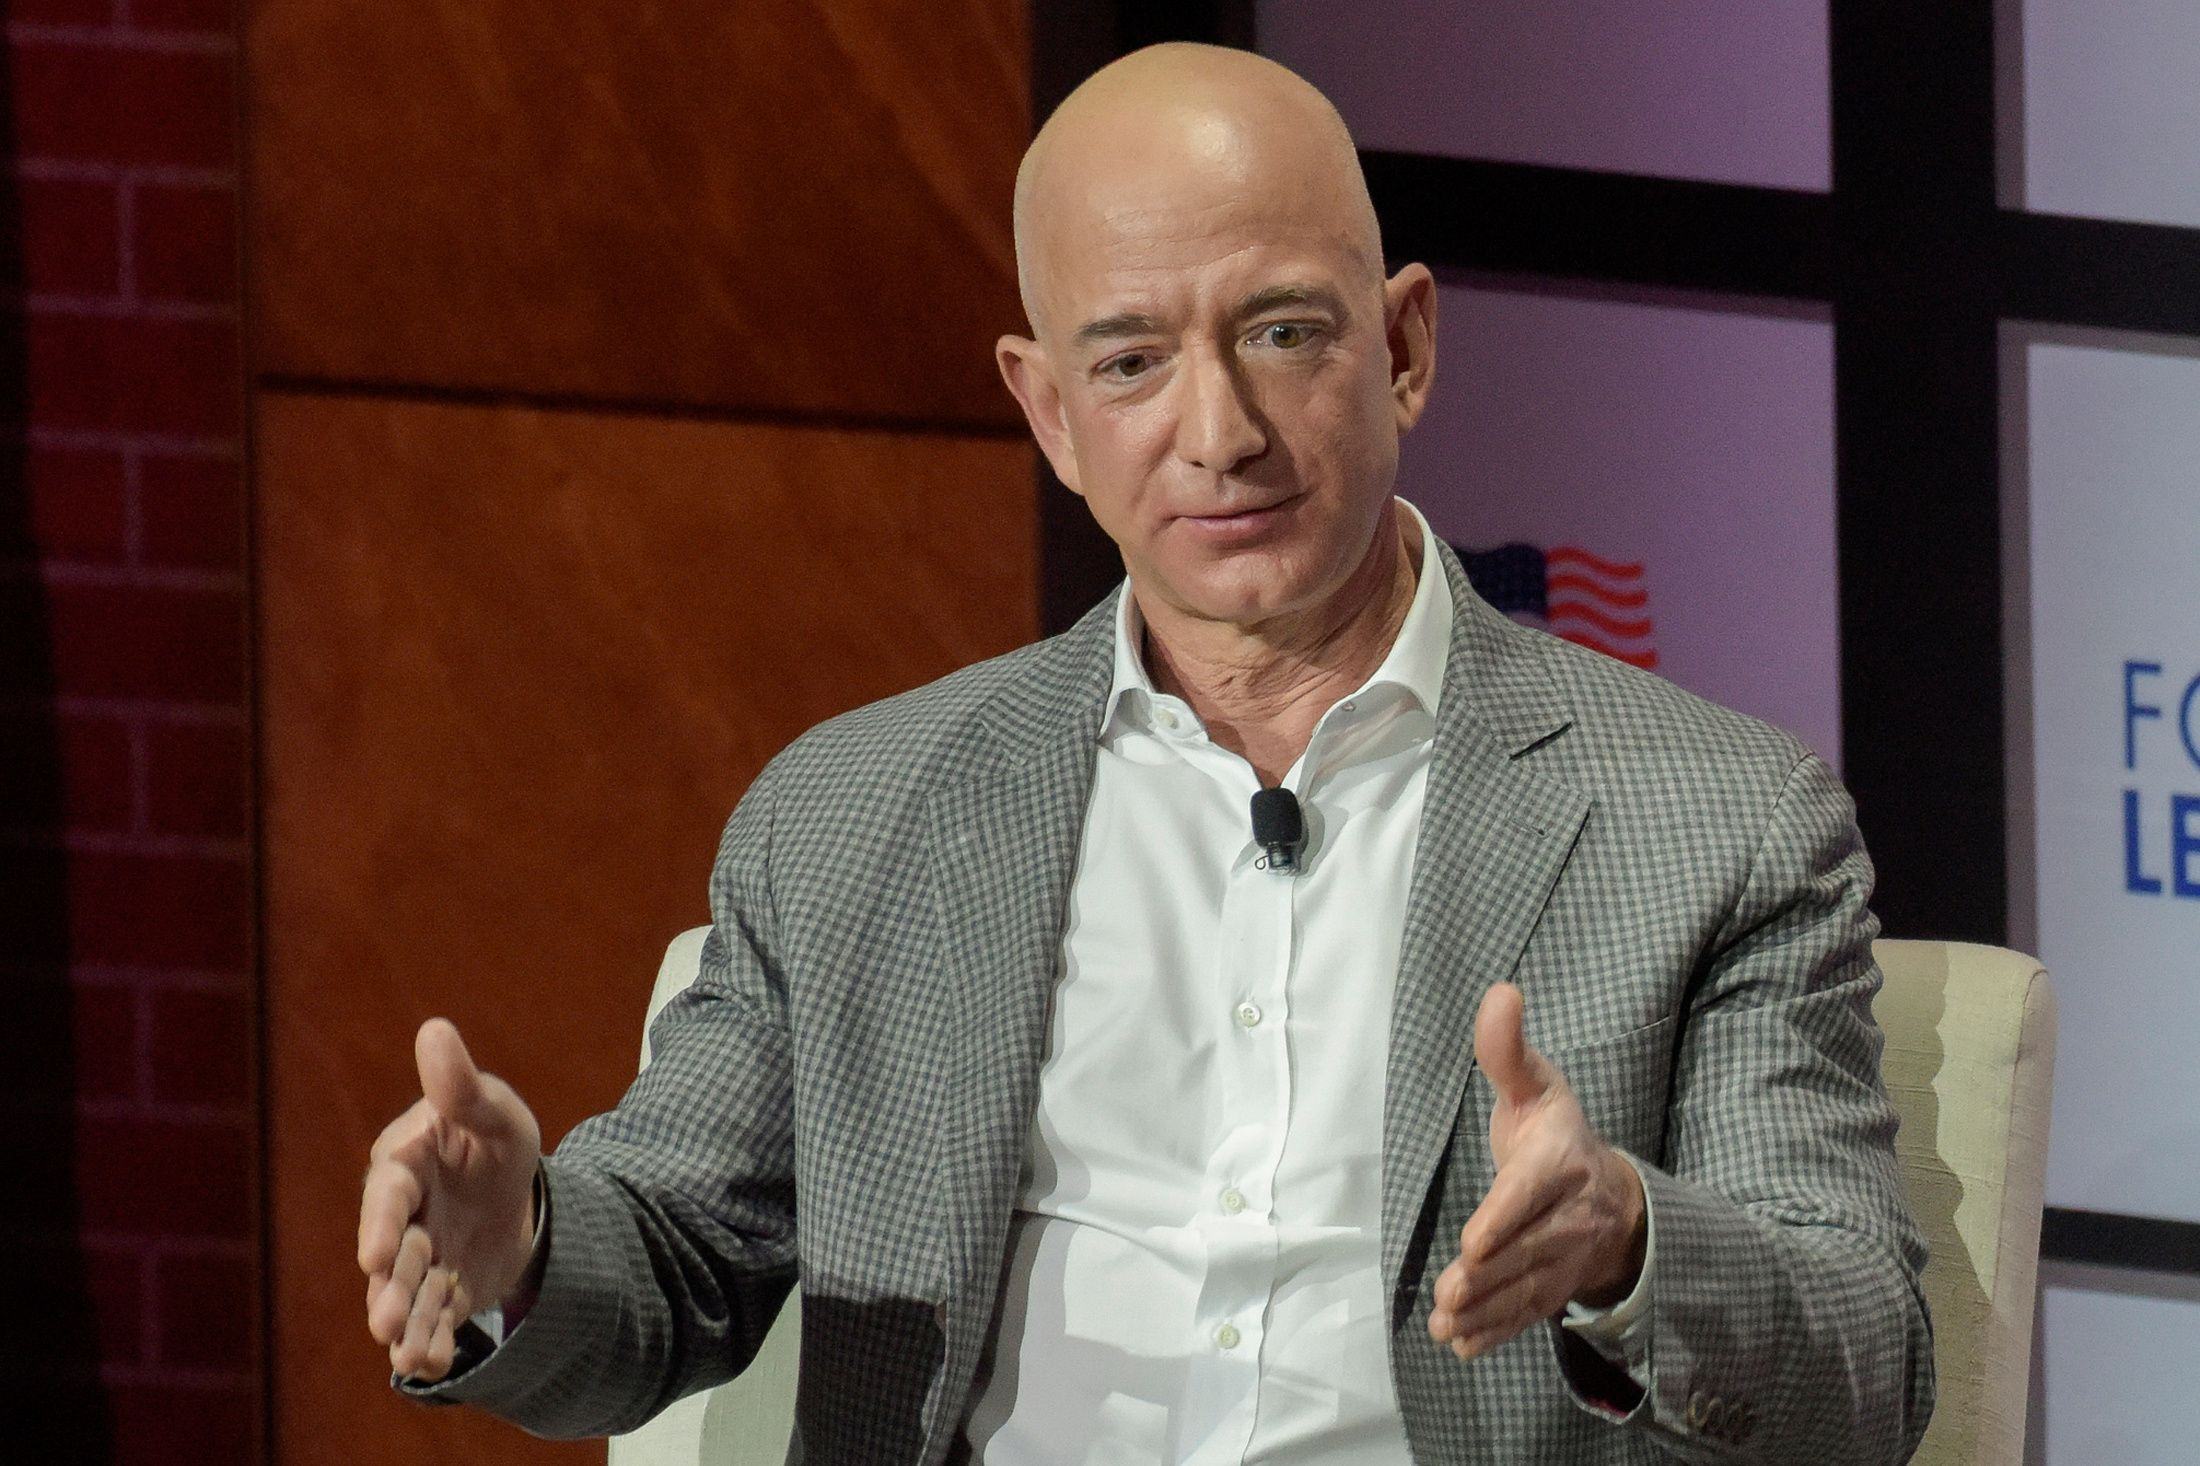 Jeff Bezos named richest man in history as Amazon workers strike over conditions